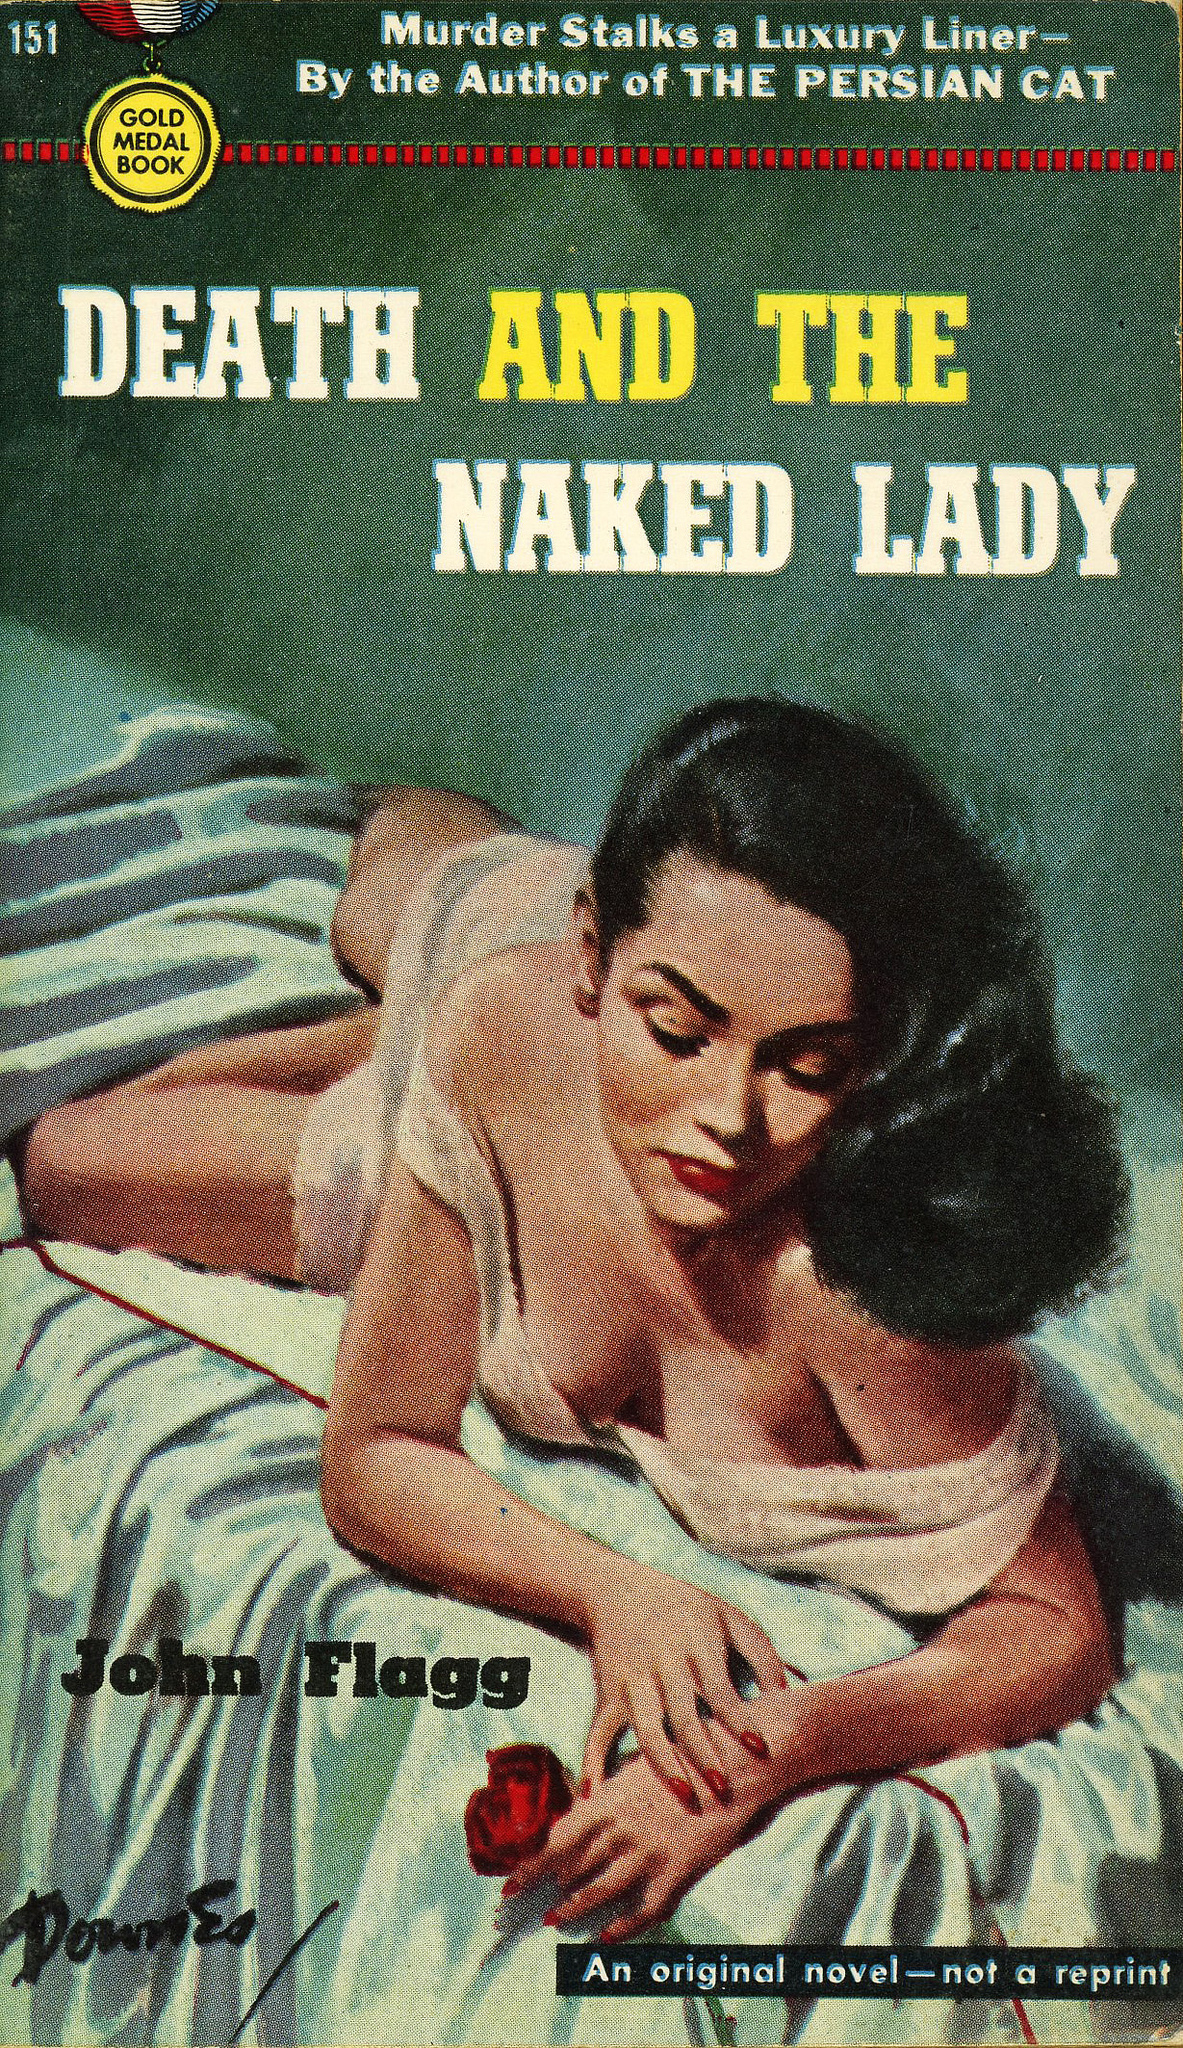 Junior recommend best of covers lady naked vintage album